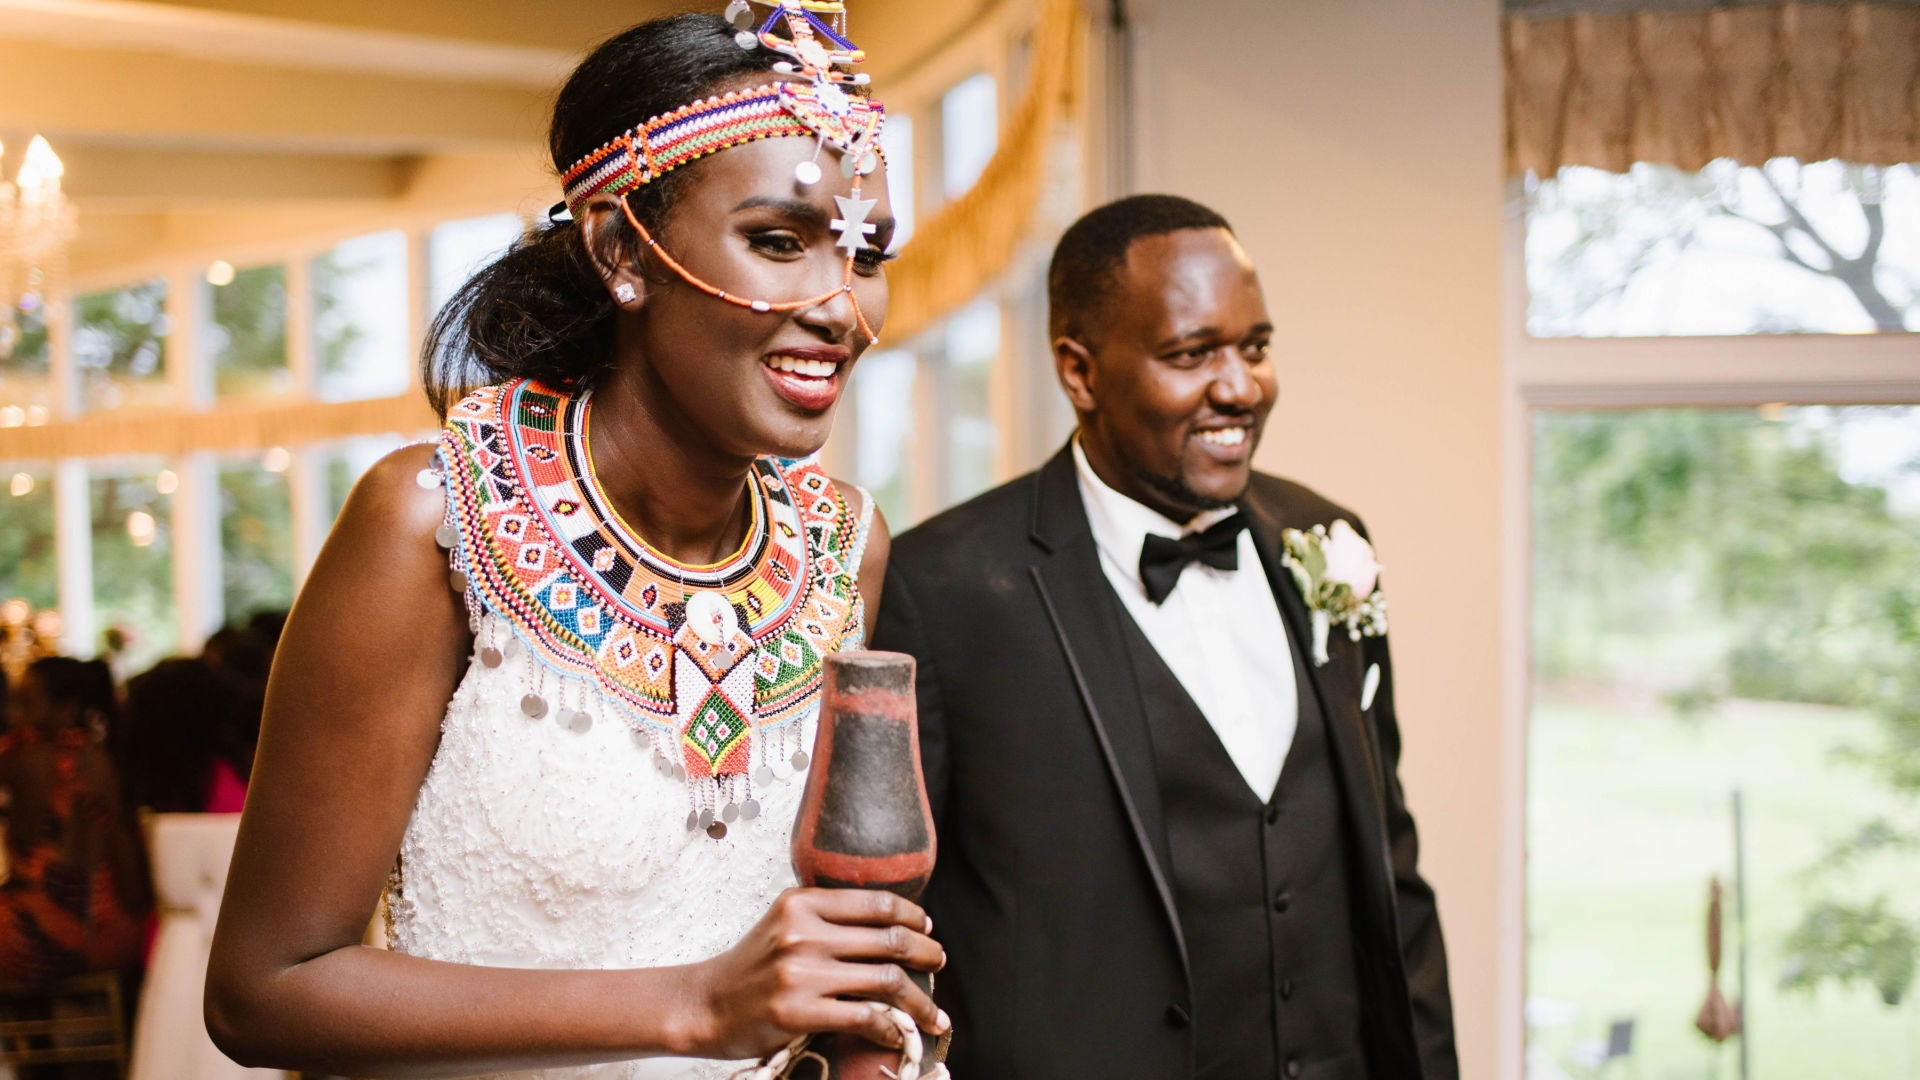 Bridal Bliss: Viviana And Benson's Modern Wedding With A Cultural Twist